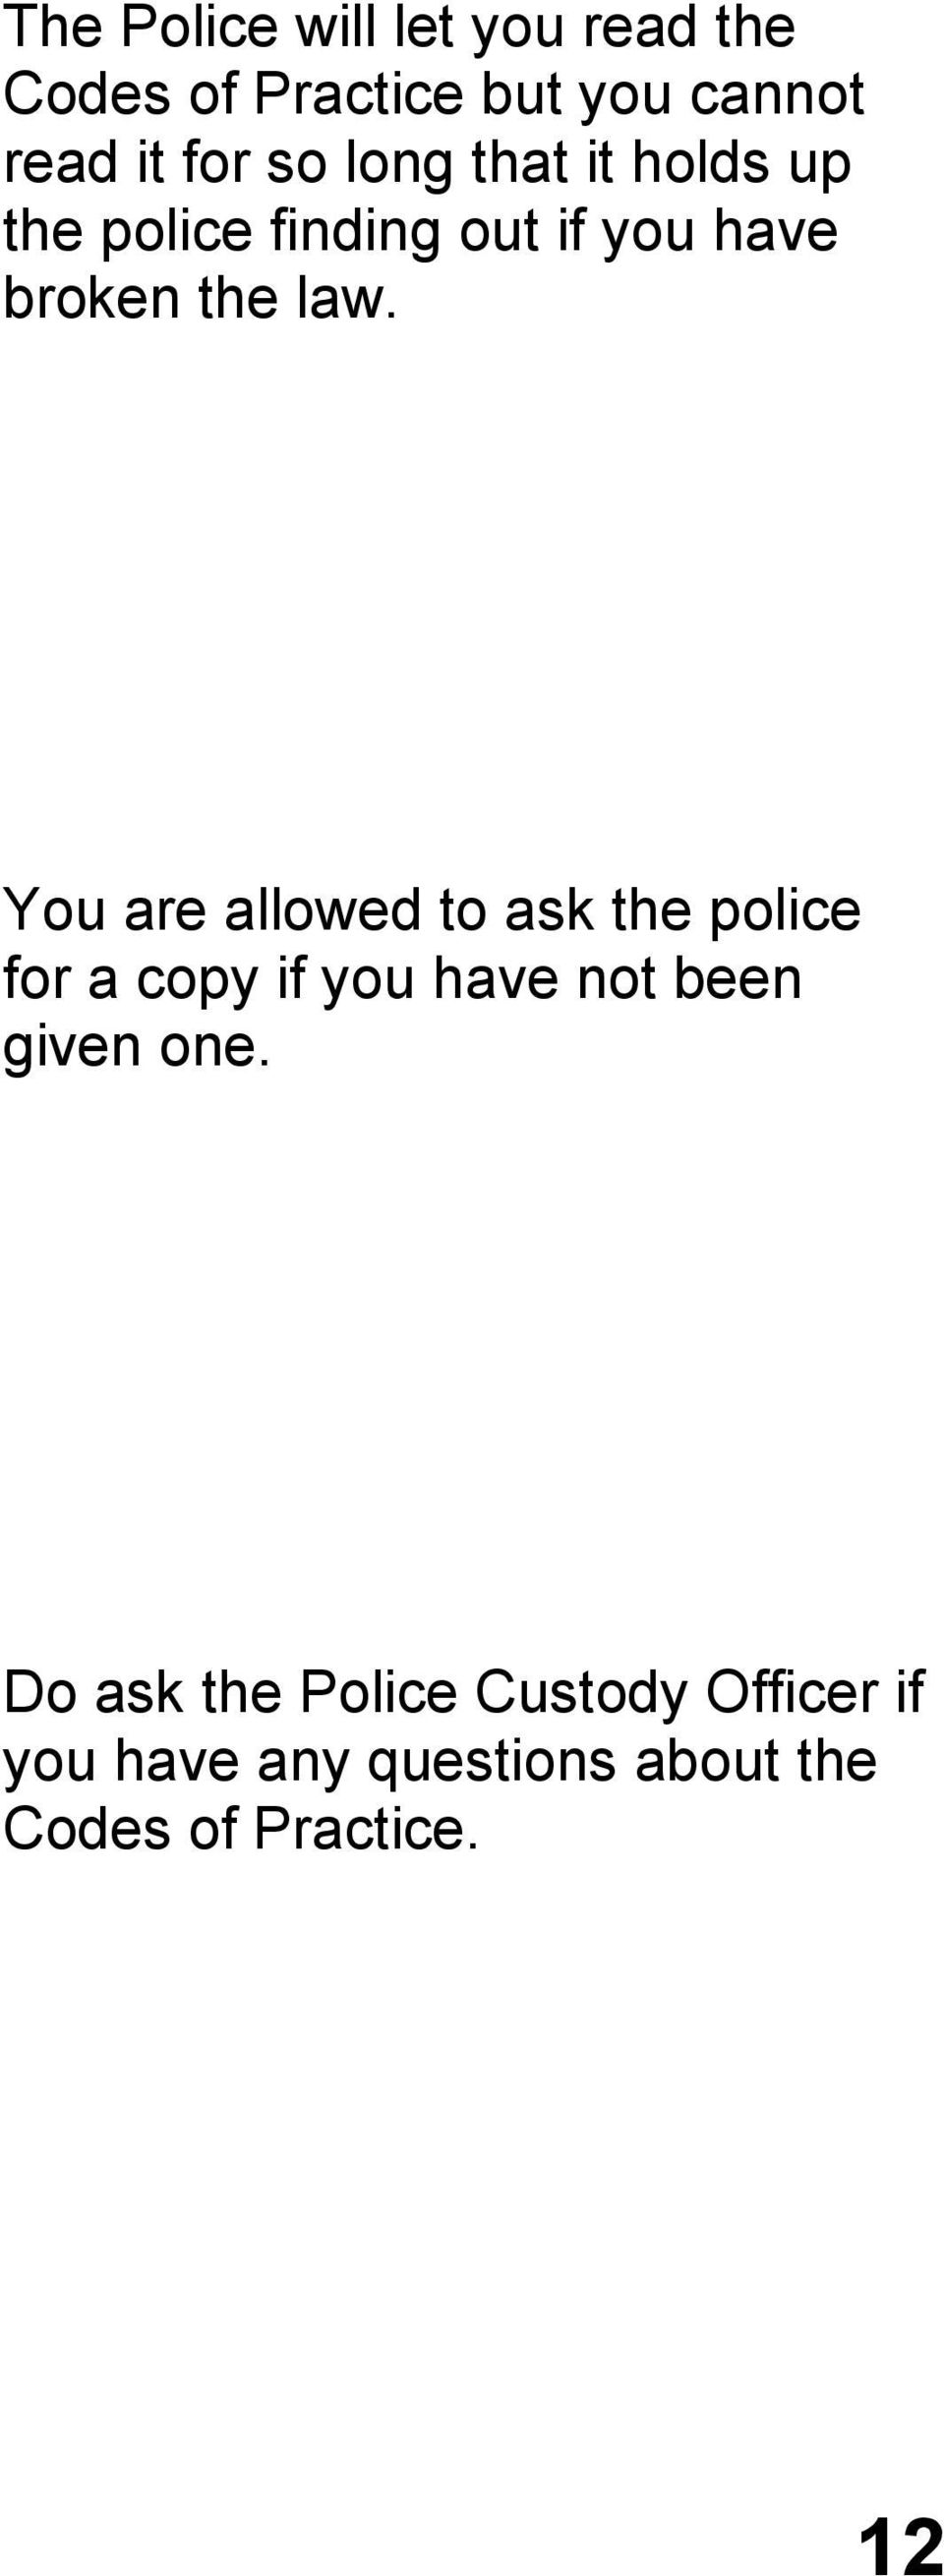 You are allowed to ask the police for a copy if you have not been given one.